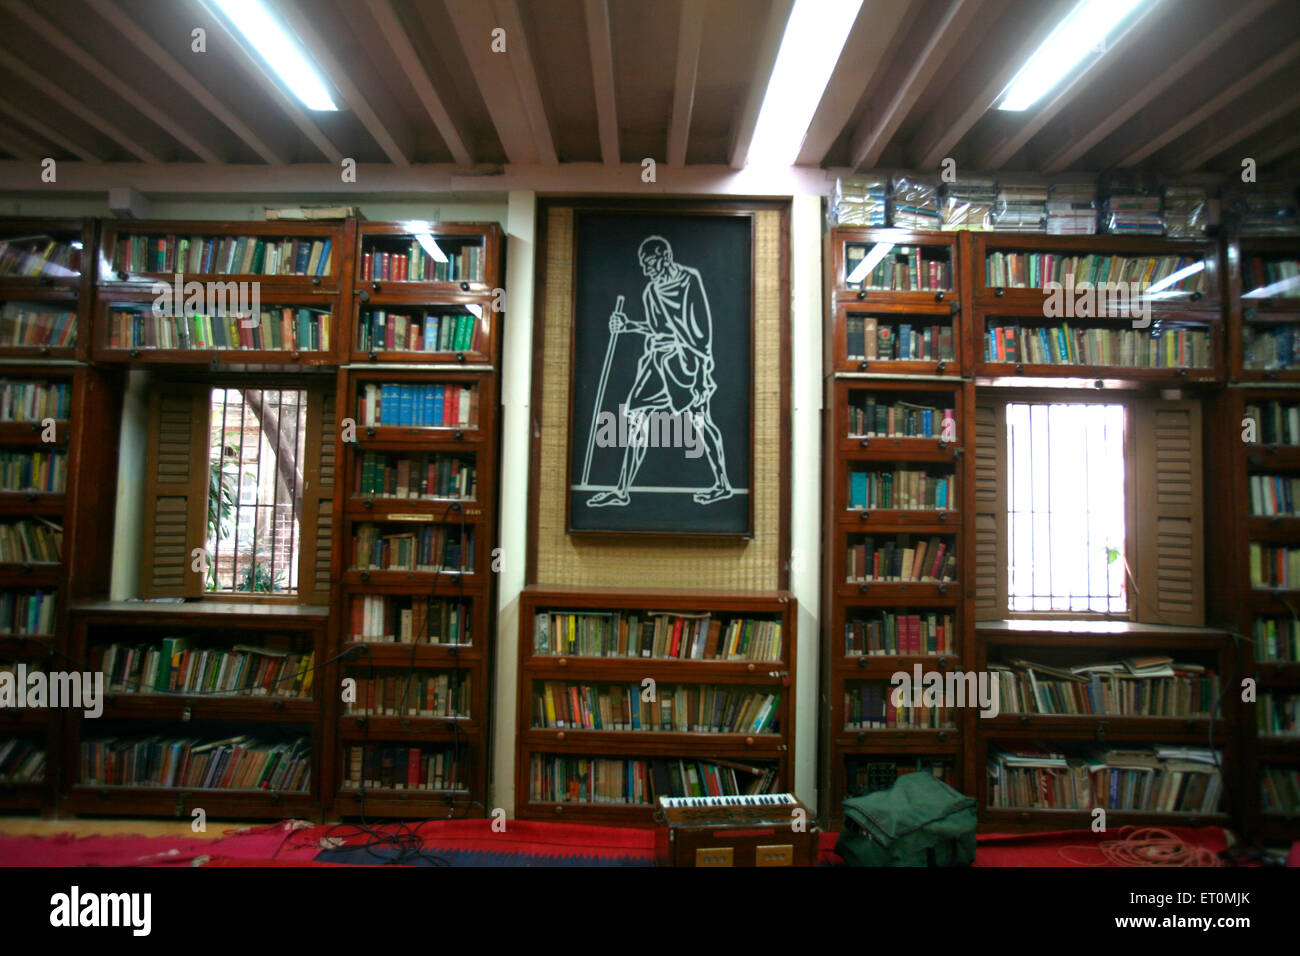 Library of Mani Bhavan ; place where Gandhi lived during his visit to Bombay now Mumbai ; Maharashtra ; India - Stock Image